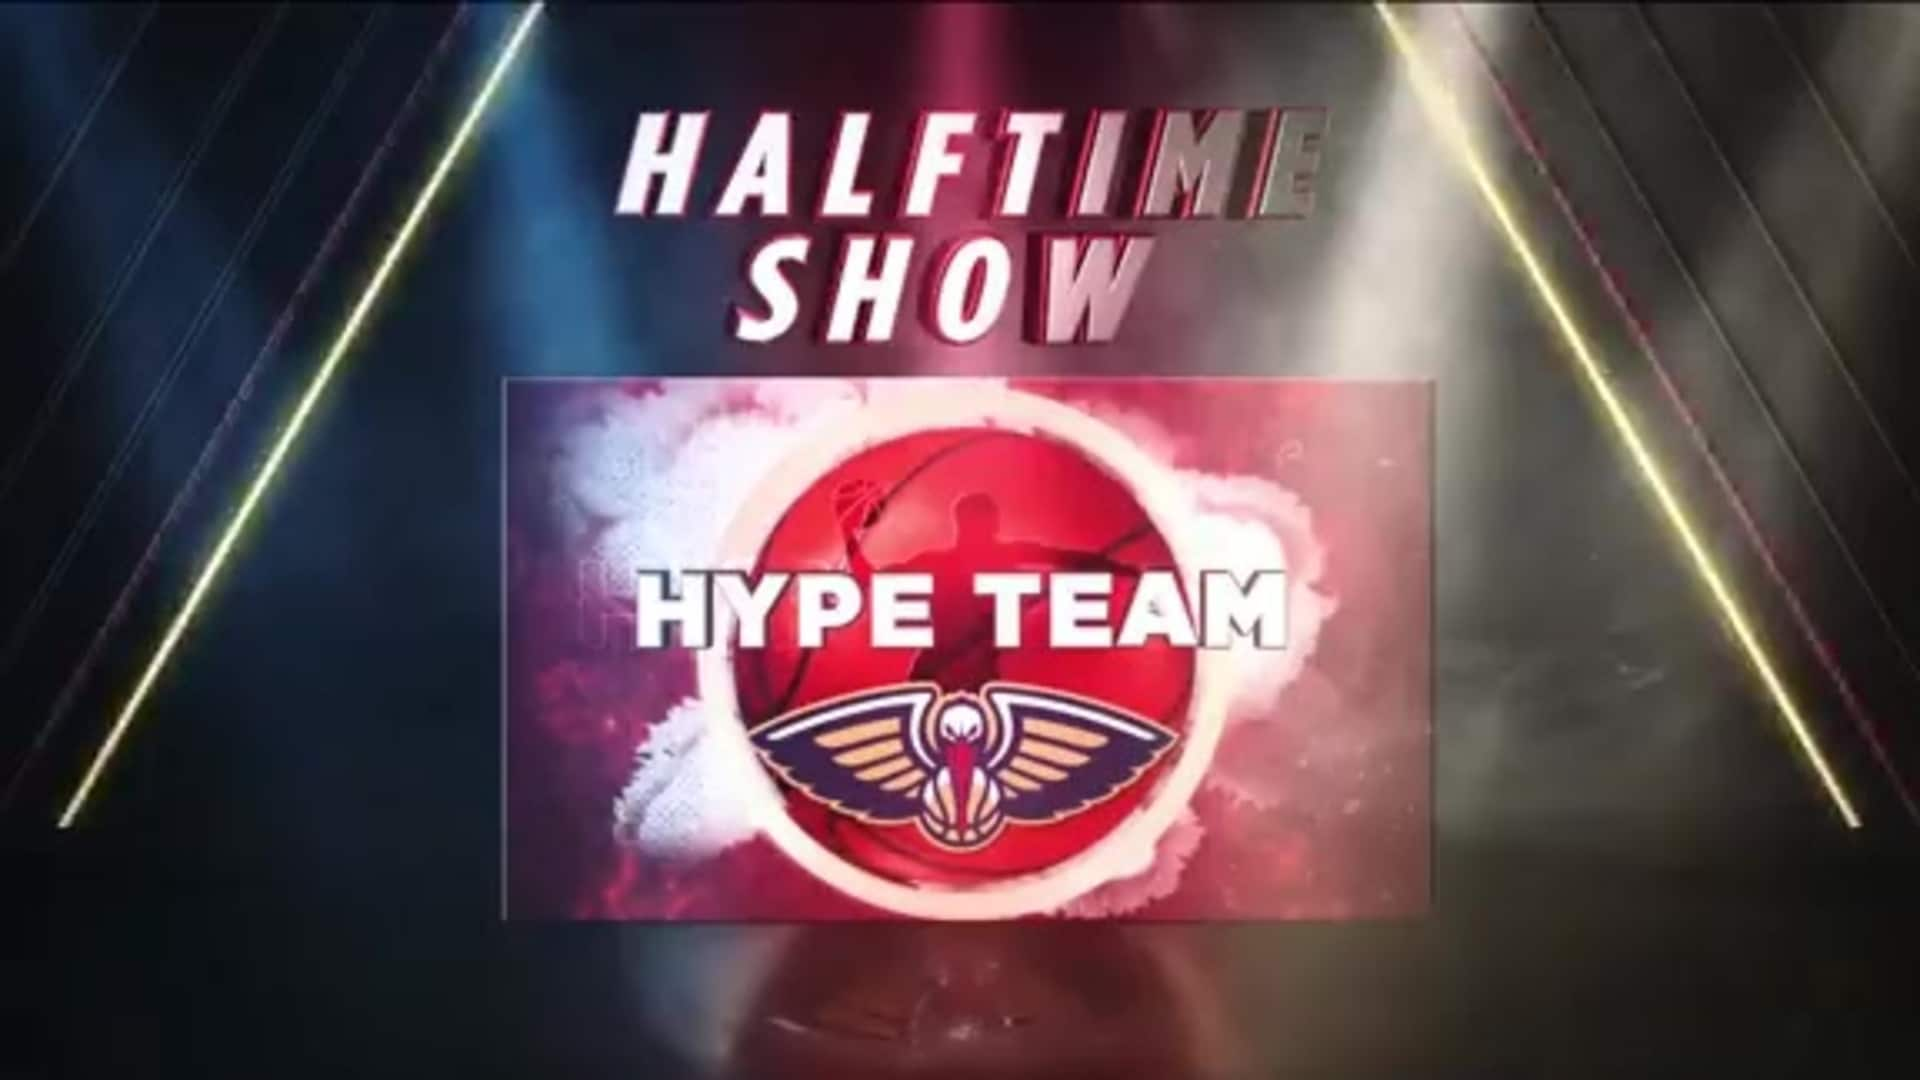 Pelicans Halftime: Pelicans Hype Team - January 6, 2020 vs. Utah Jazz